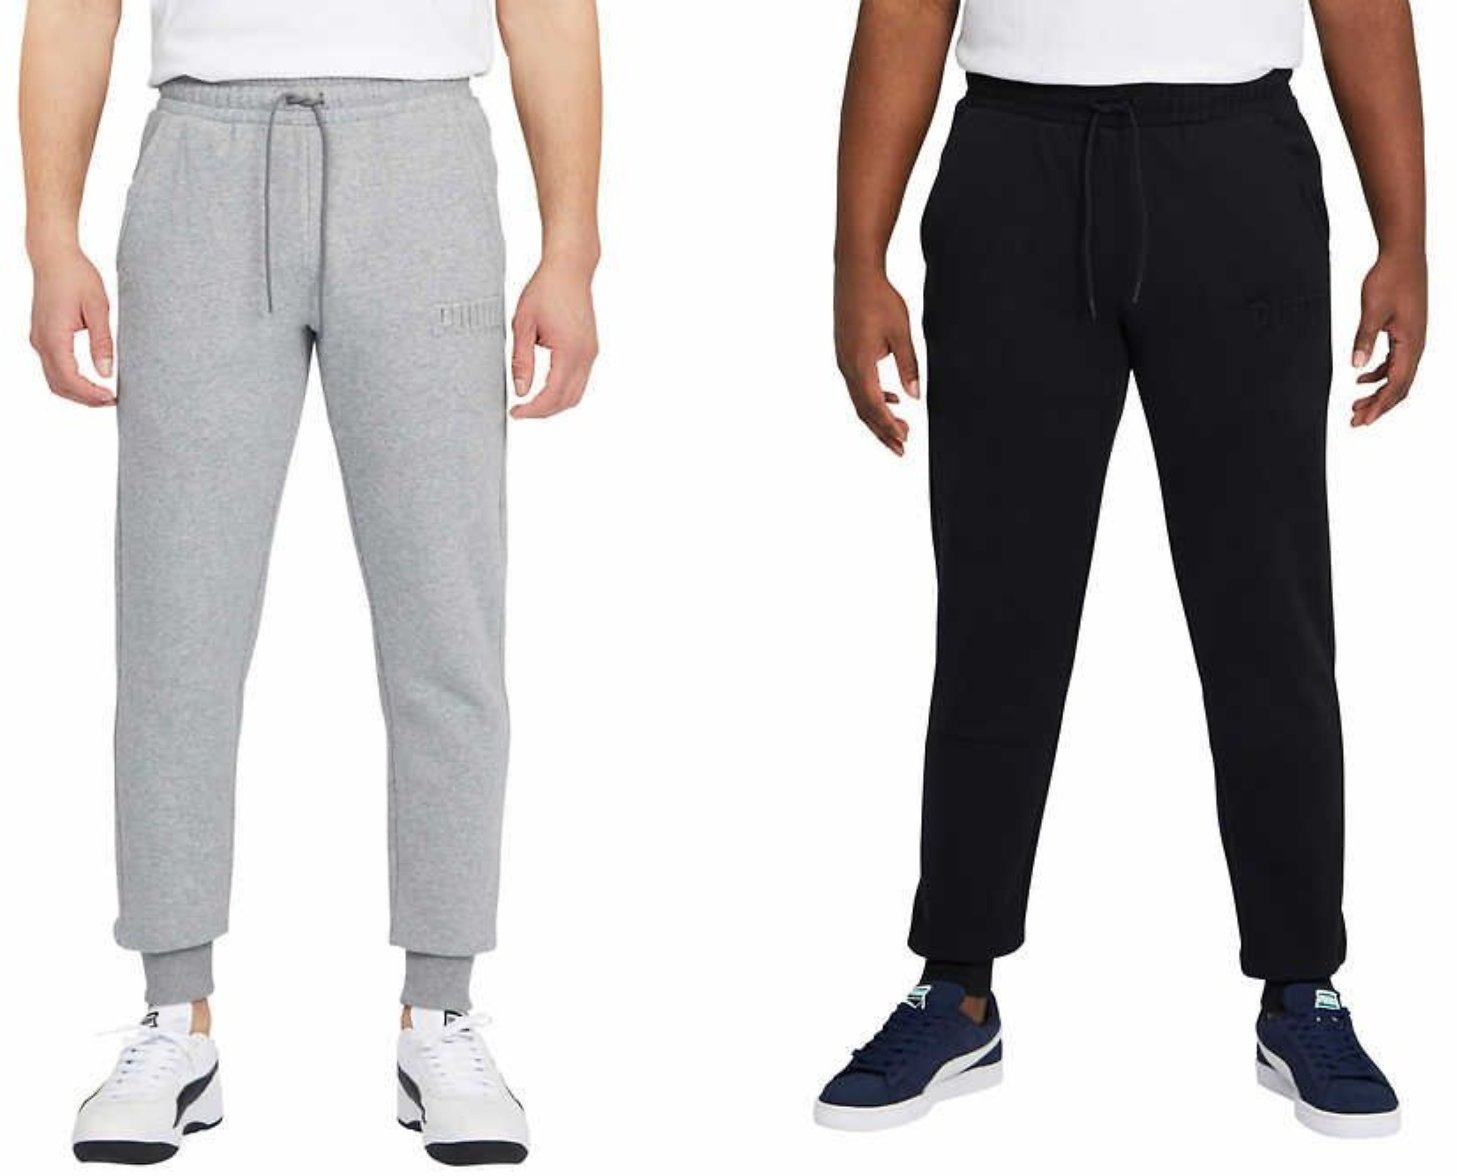 Puma Men's Embossed Fleece Pant( 3 Colors)+F/S